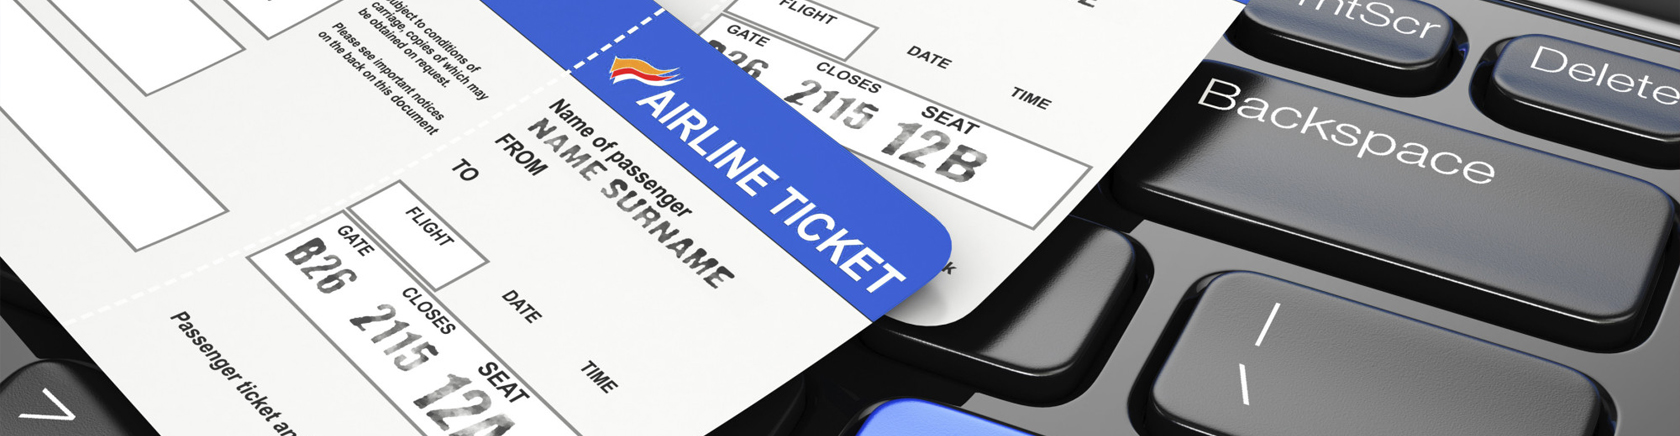 Airticket / Busticket / Railticket for Domestic & International